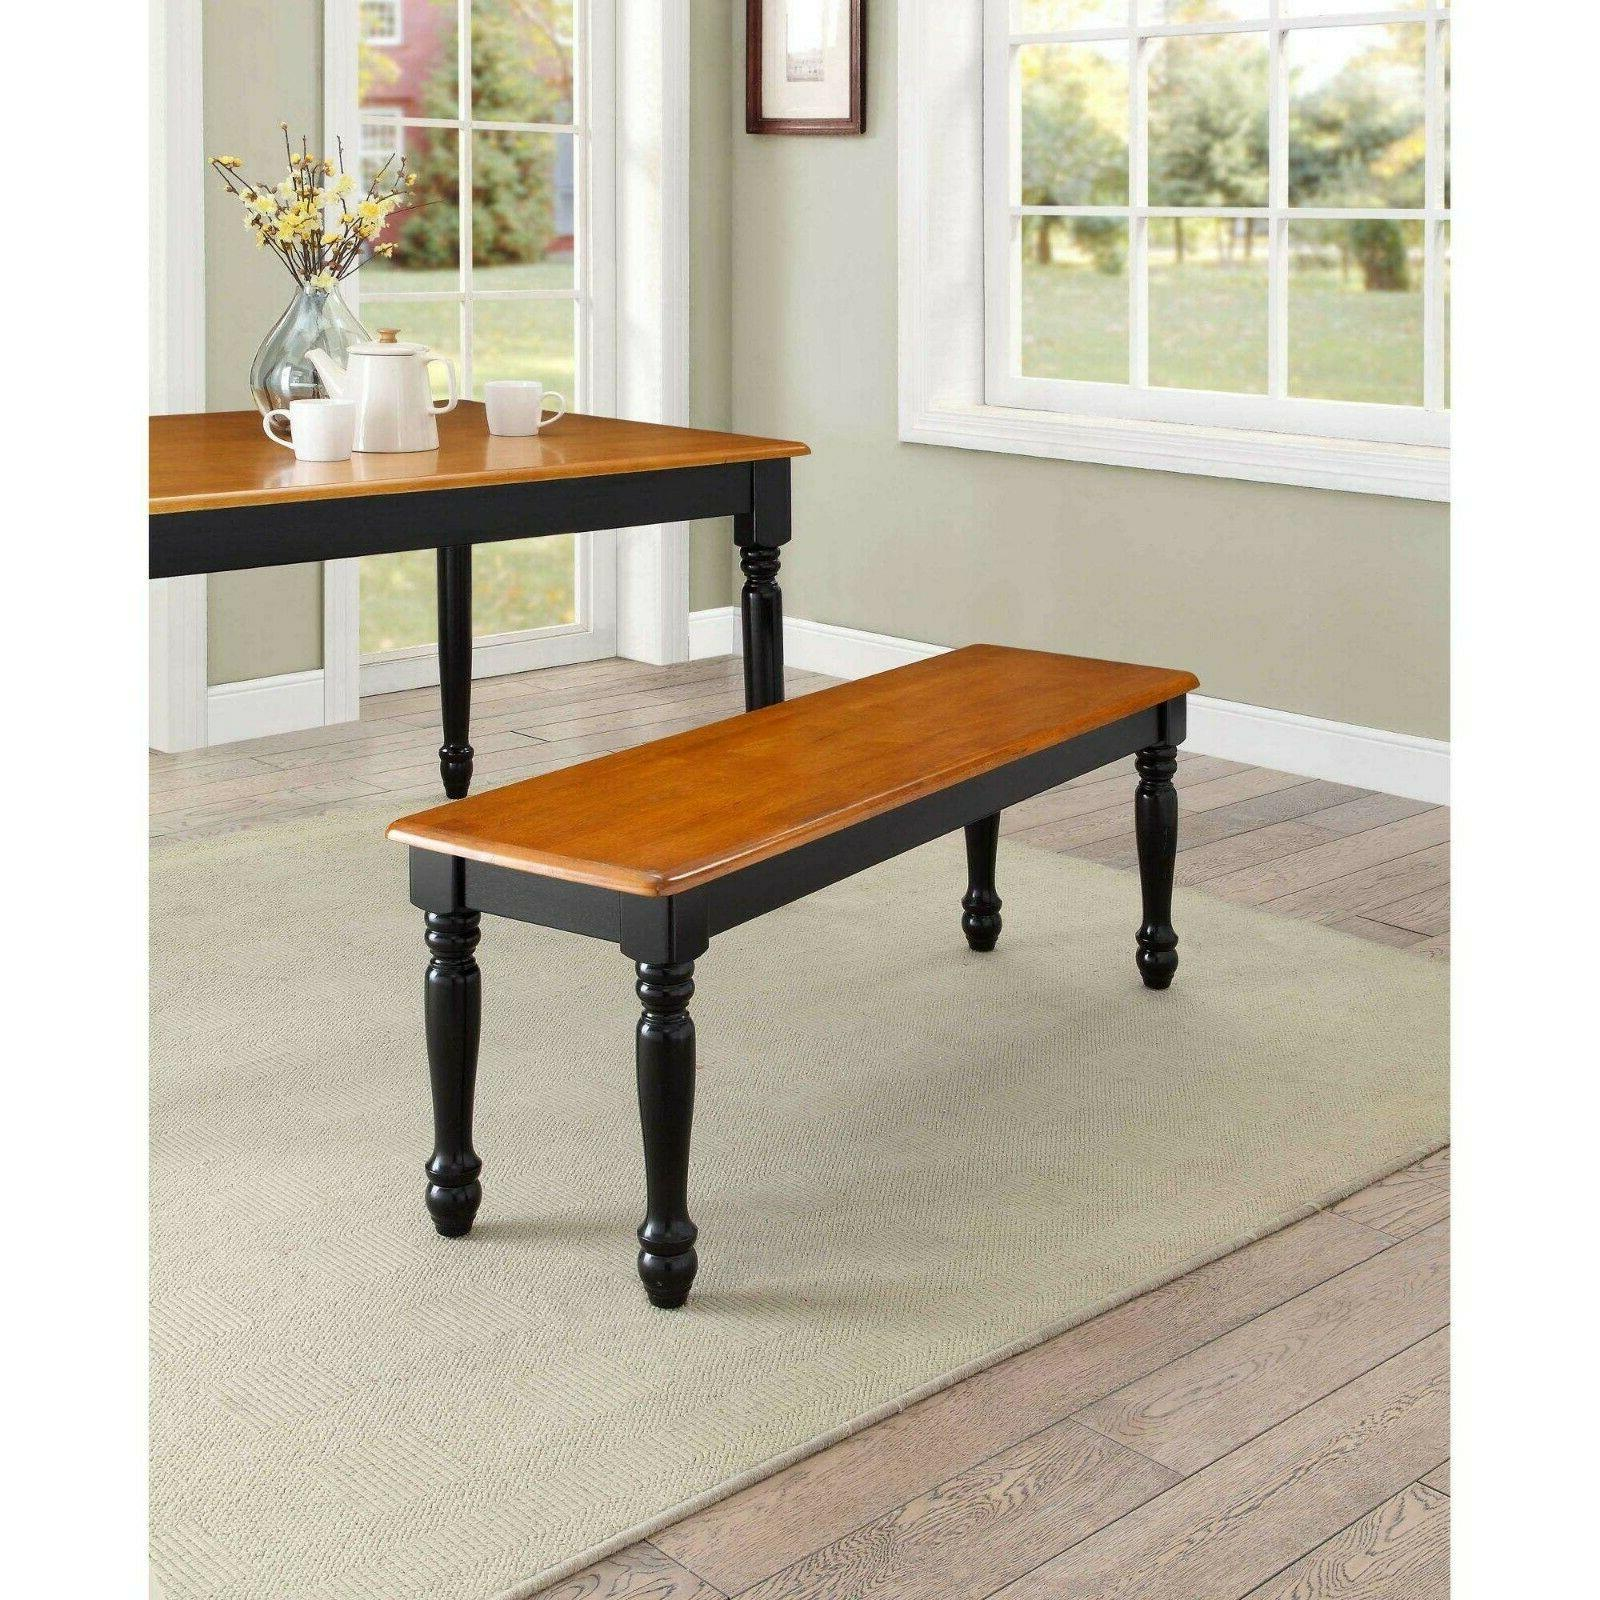 Natural Wood Table Top Kitchen Dining Room Bench Seat Home F